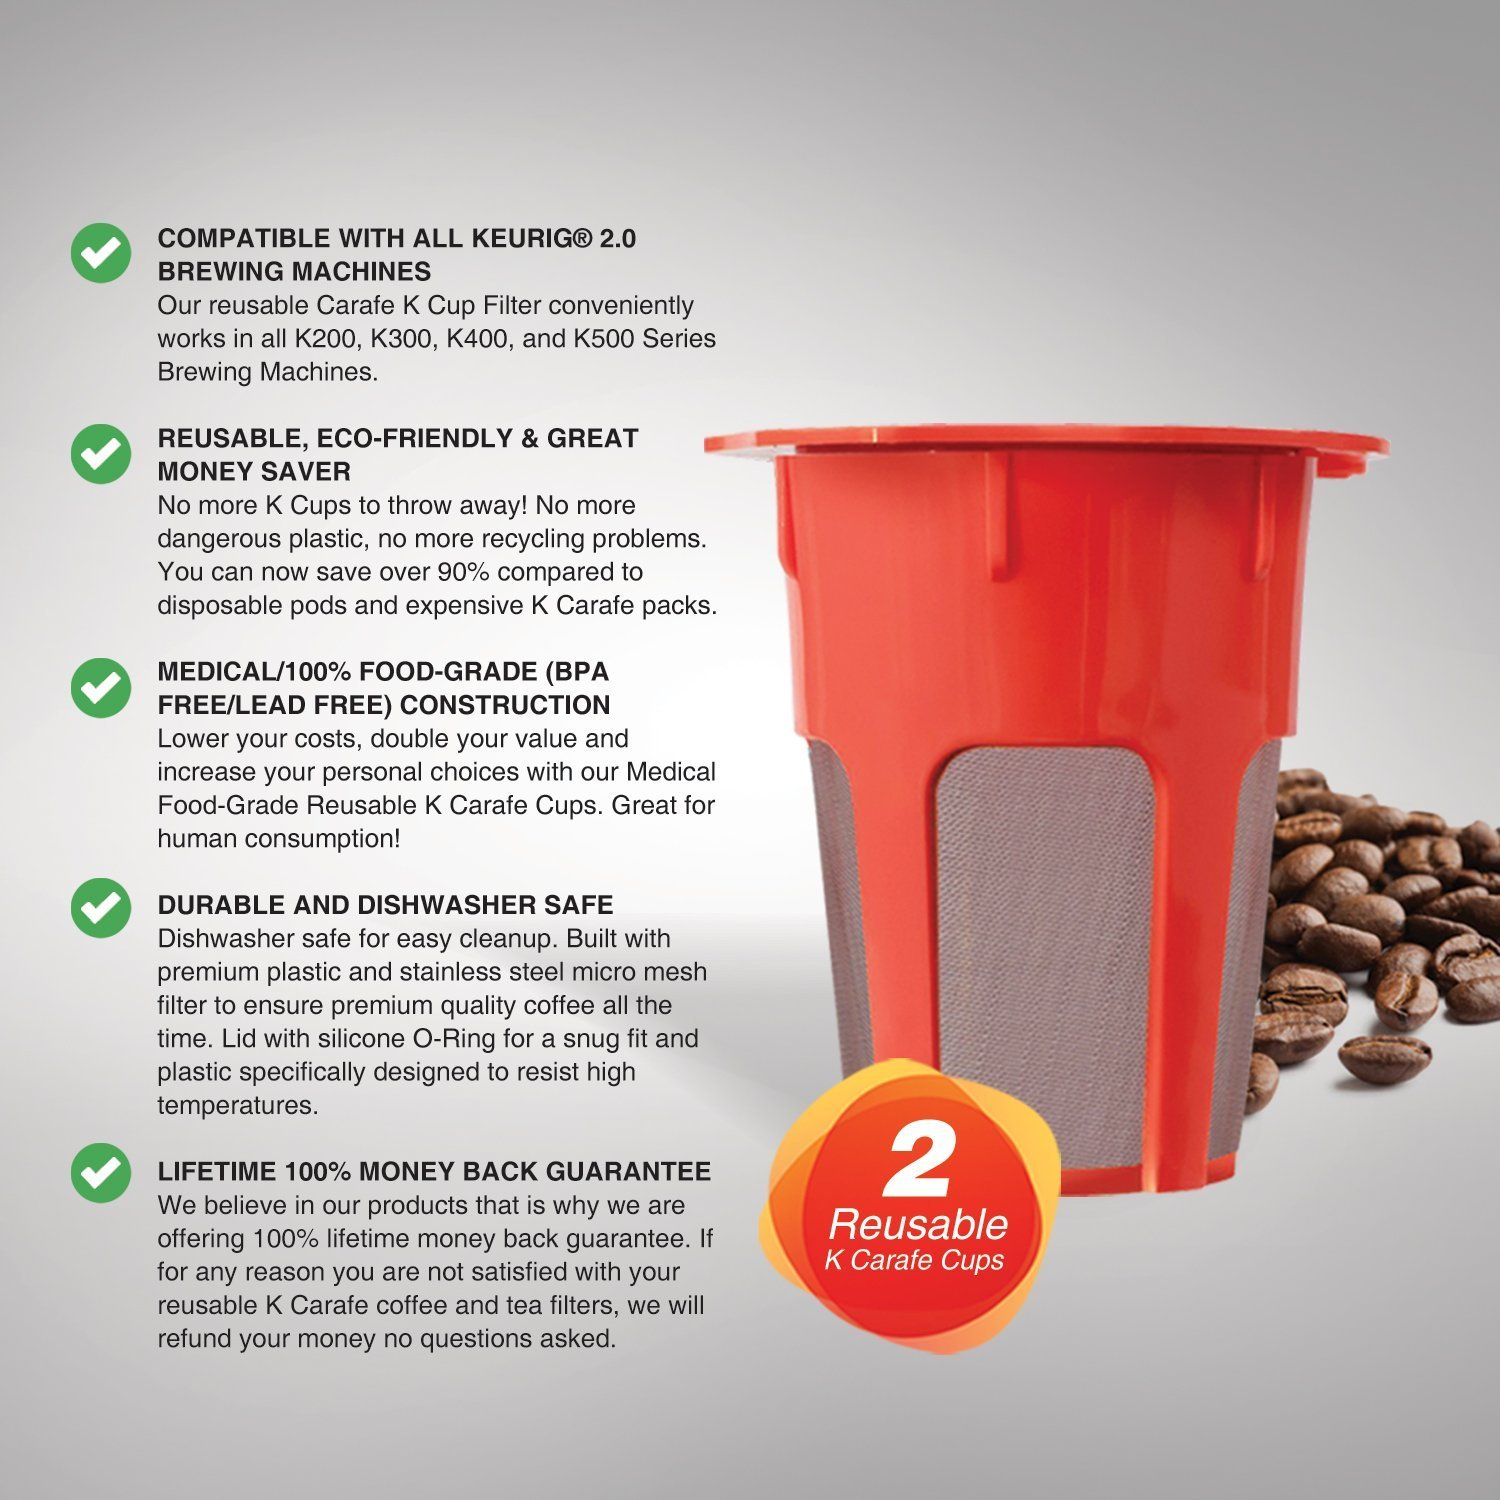 How to make good coffee with reusable k cup